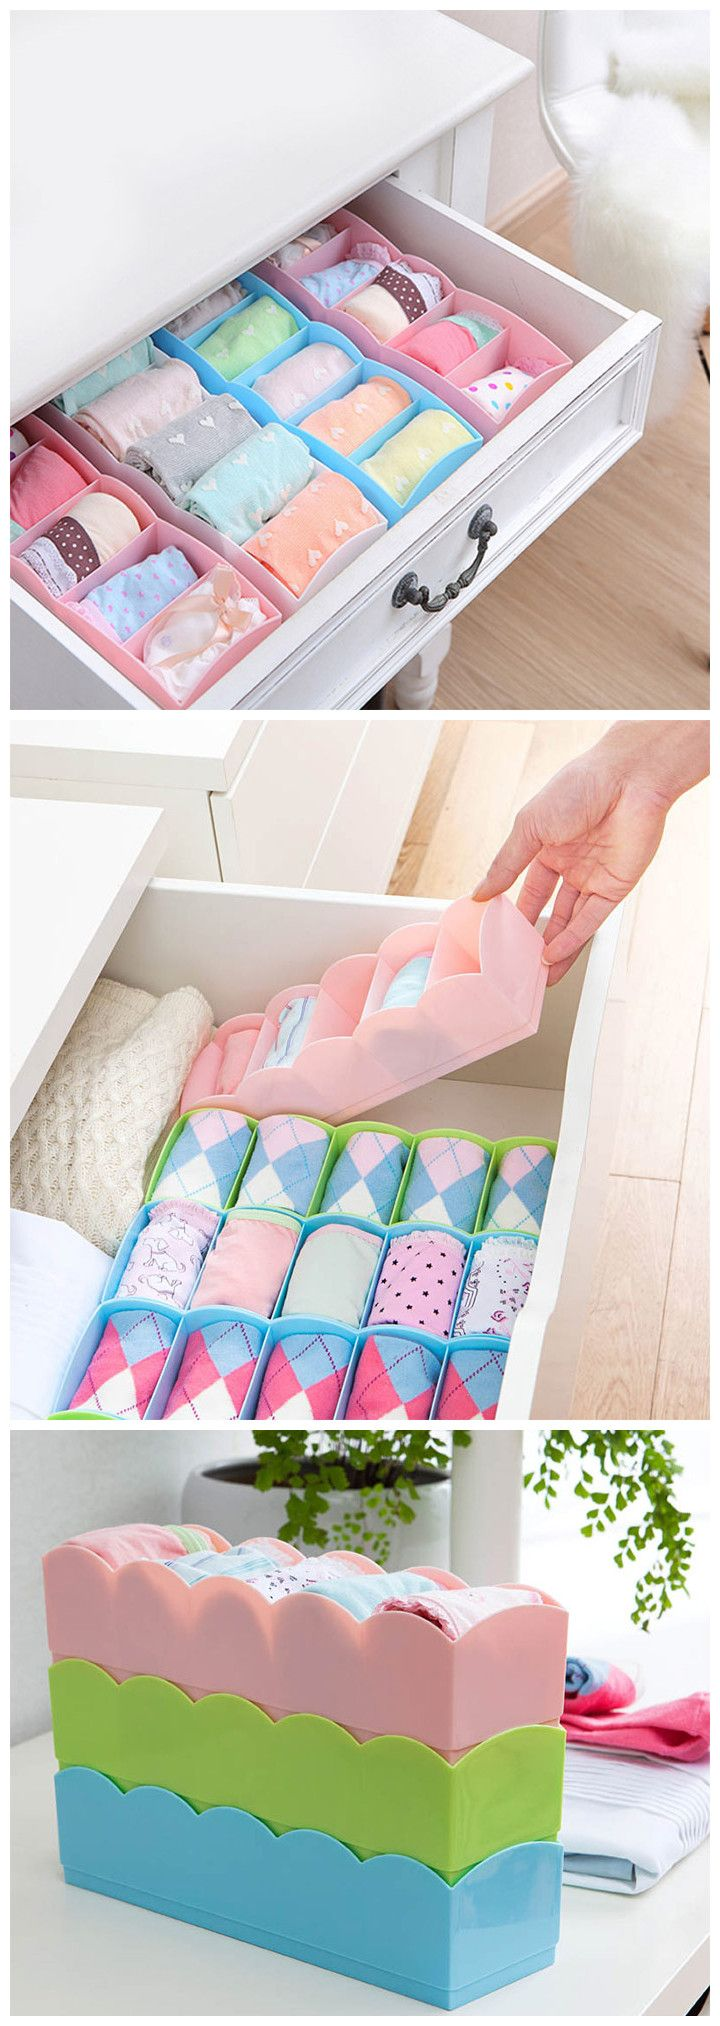 Save up your precious living spaces simply by the underwear drawer storage box into your drawer or desktop